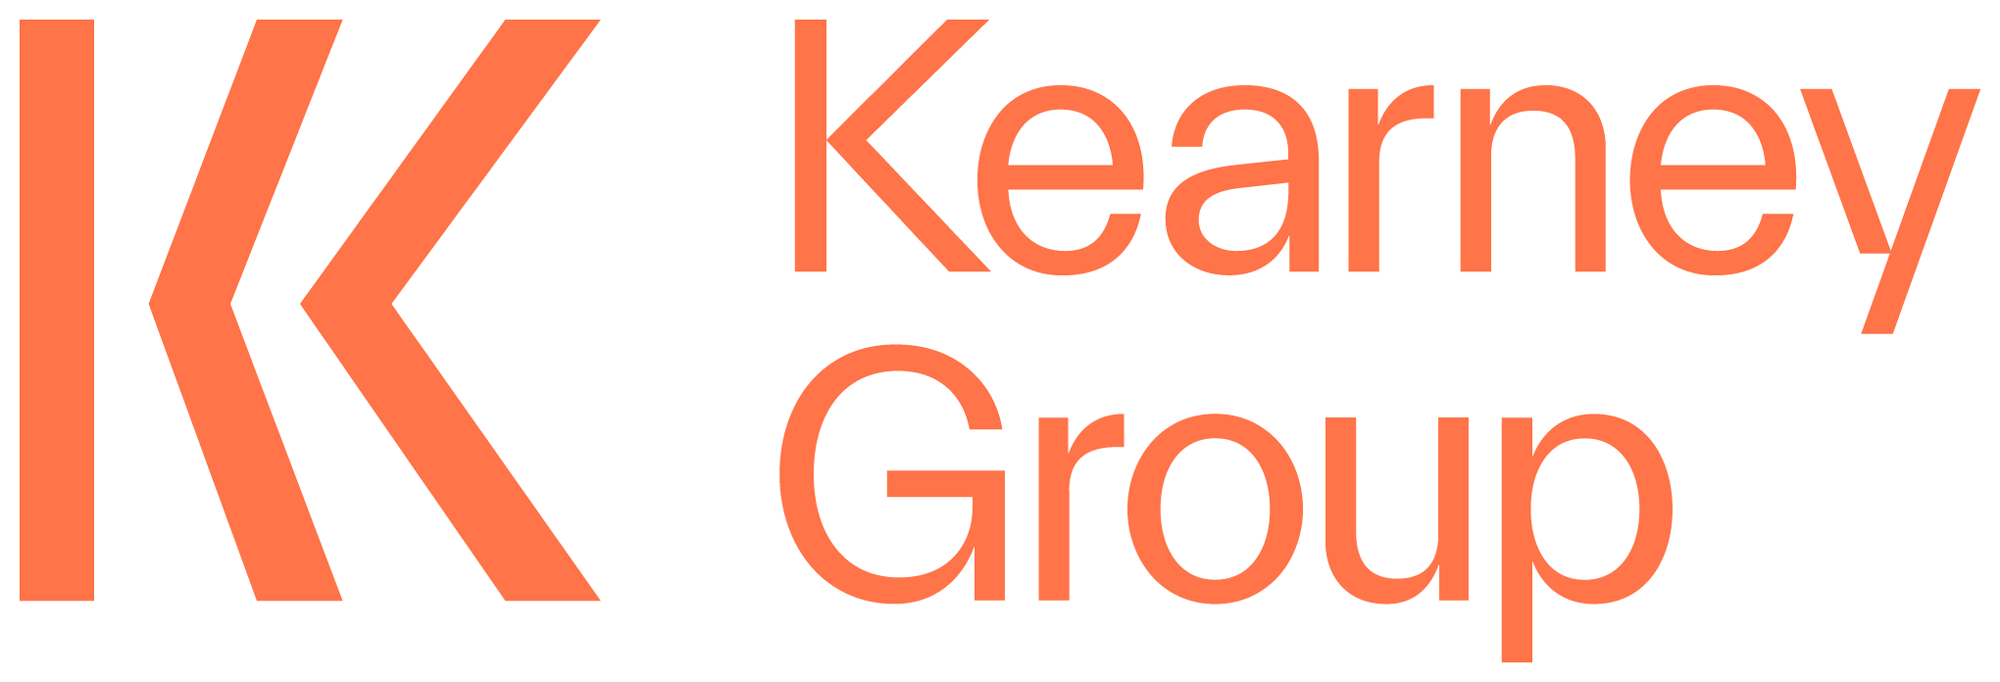 New Logo and Identity for Kearney Group by Self-titled